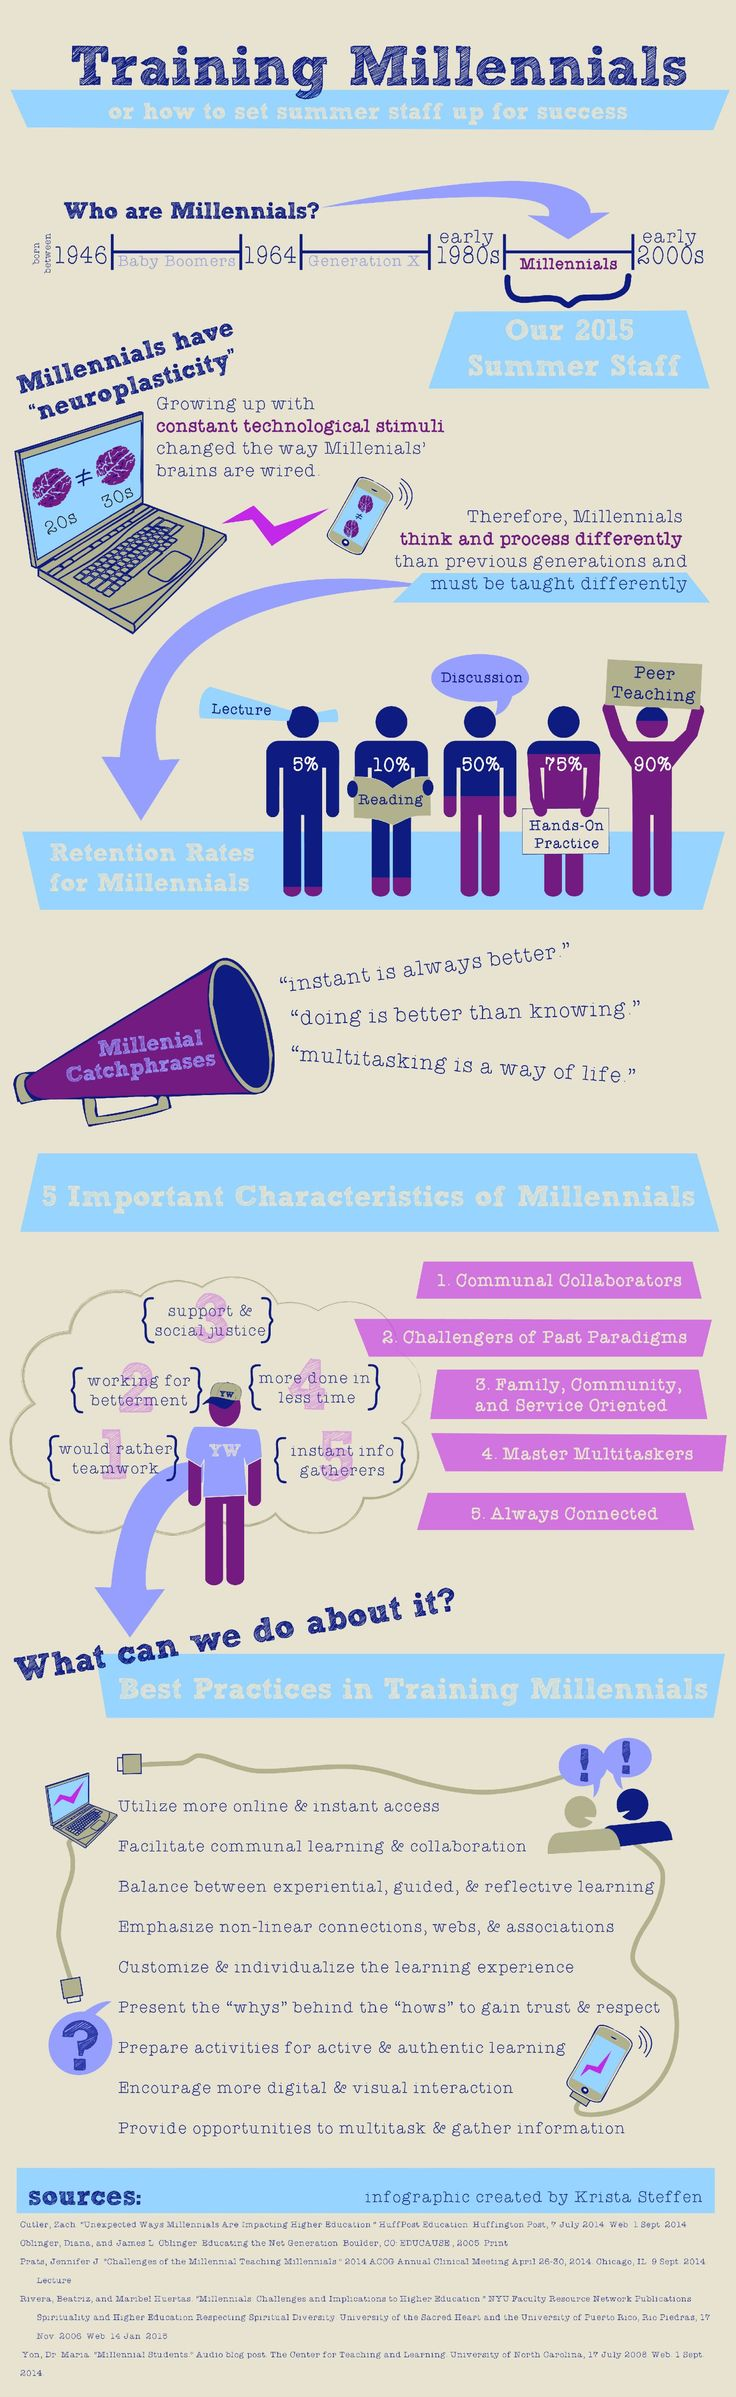 images about millennial workforce and future leadership on blog millennial infographic